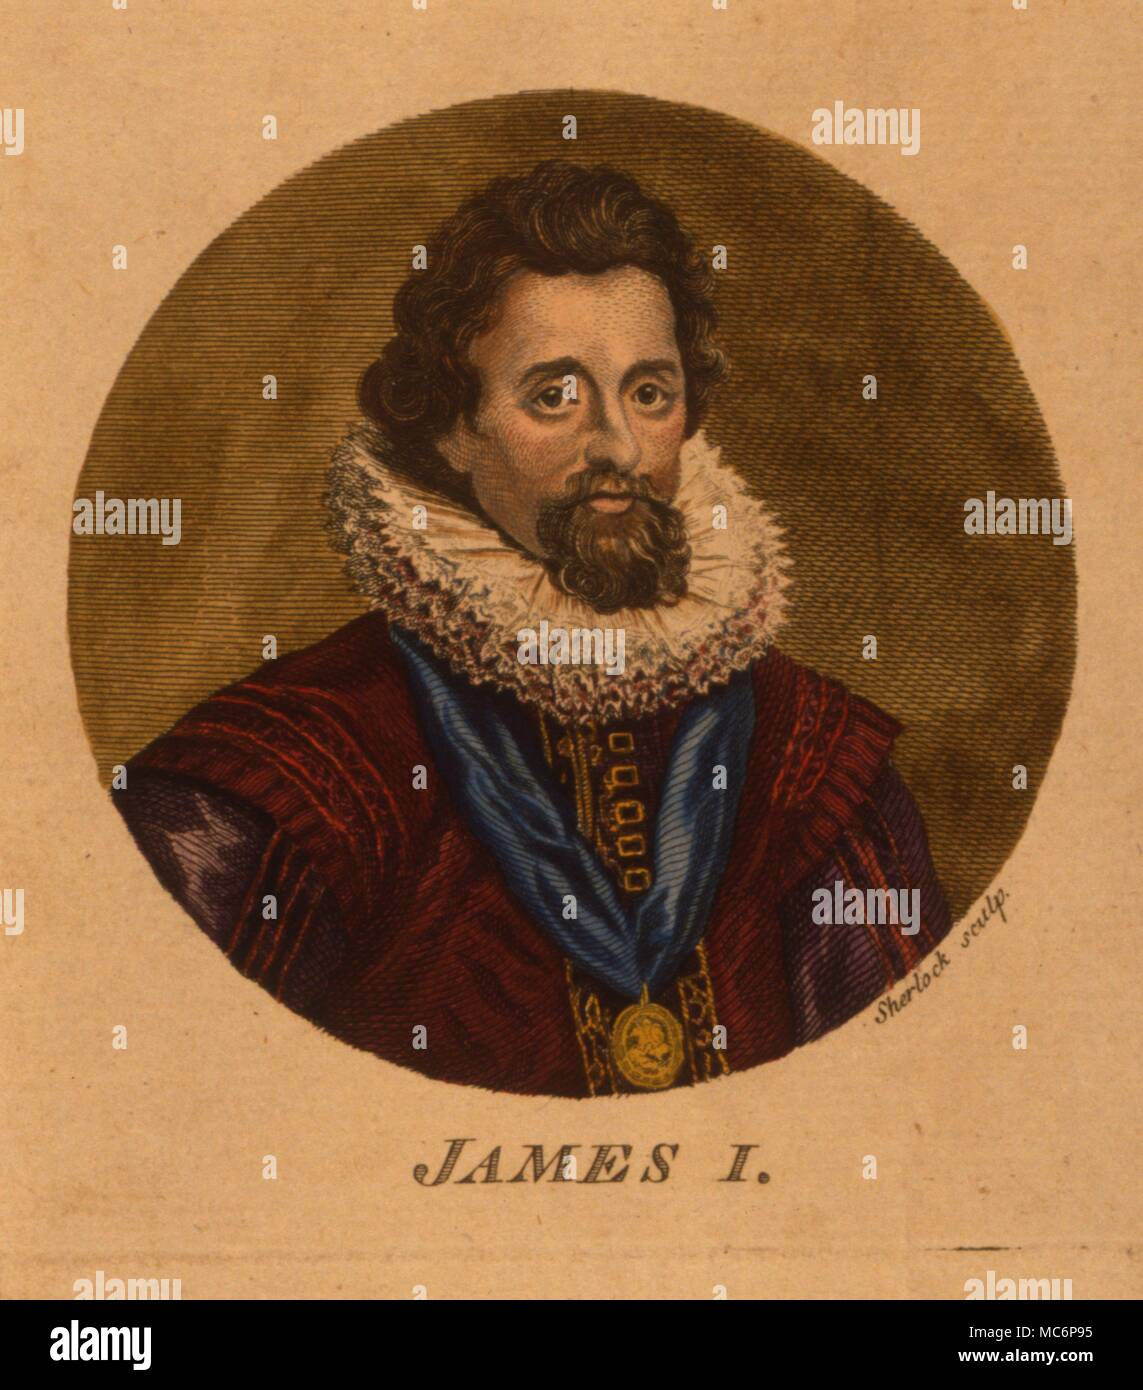 James I of England [James IV of Scotland] was the author of 'Daemonologie', a violent text directed against witchcraft. - Stock Image